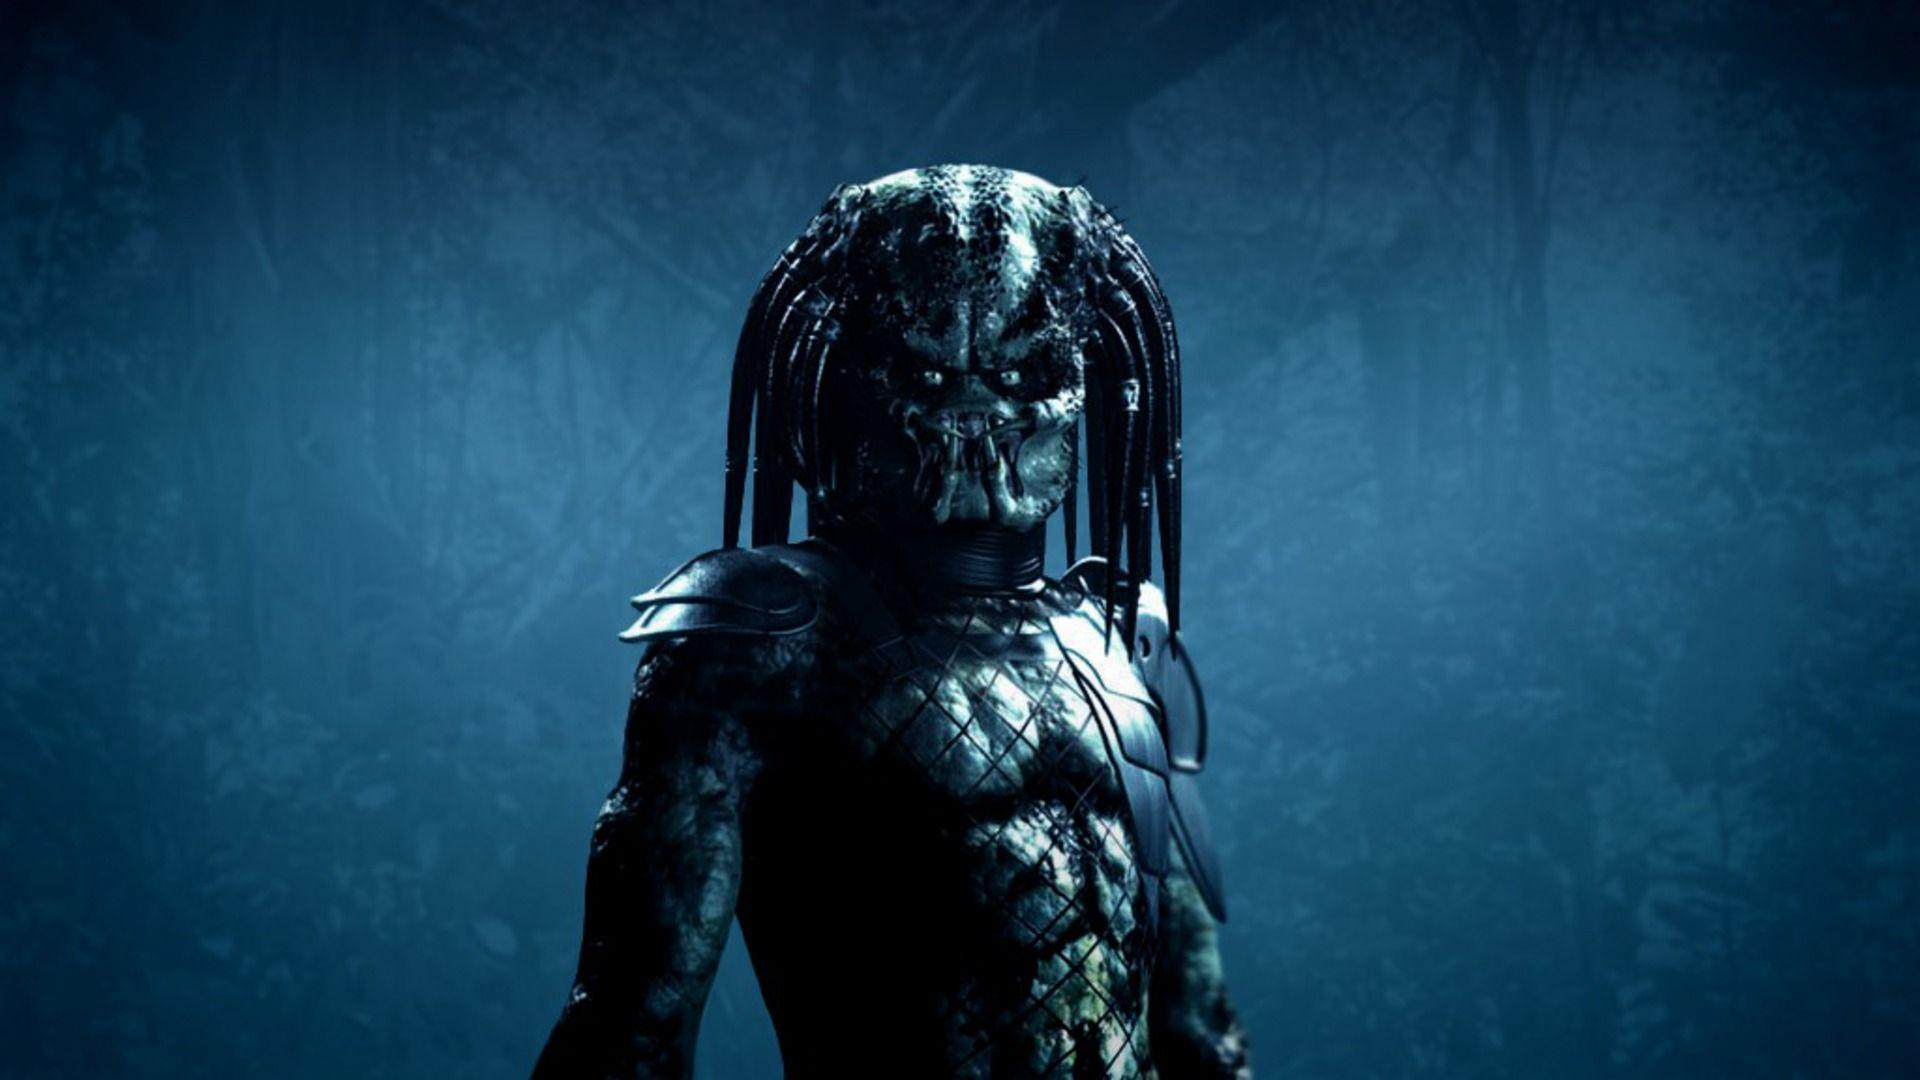 HDQ Predator Wallpapers and Pictures for desktop and mobile